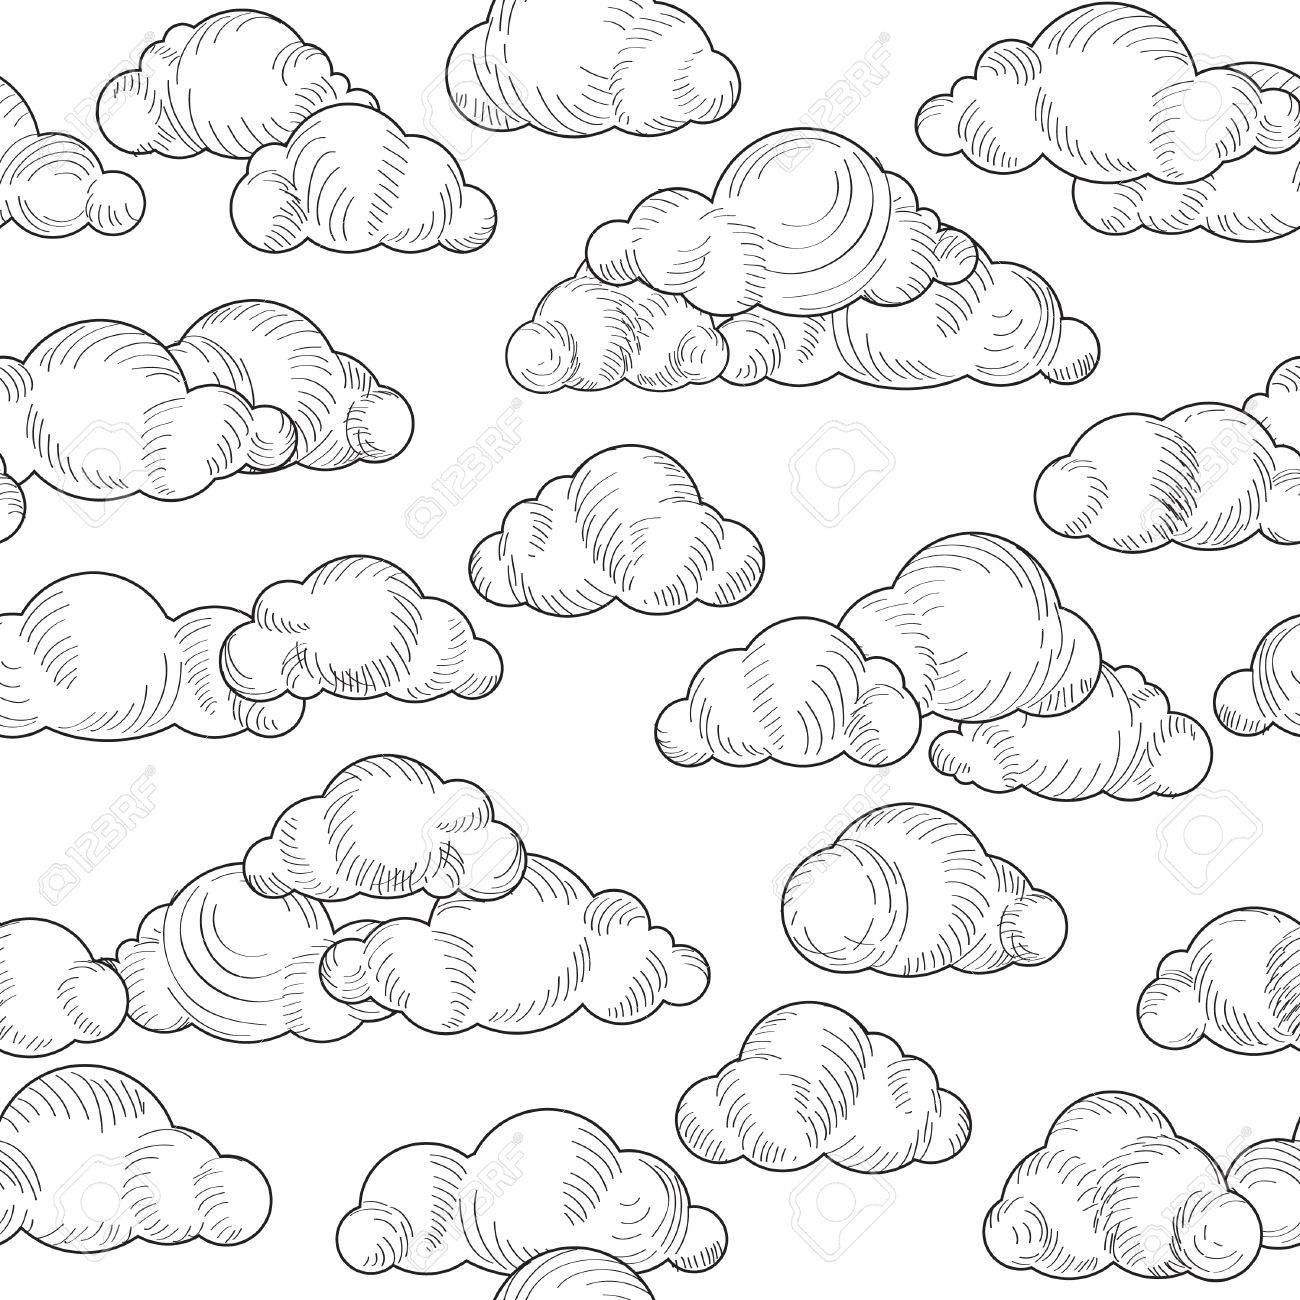 1300x1300 Cloud Doodle Black And White Pattern. Cloudy Sky Seamless